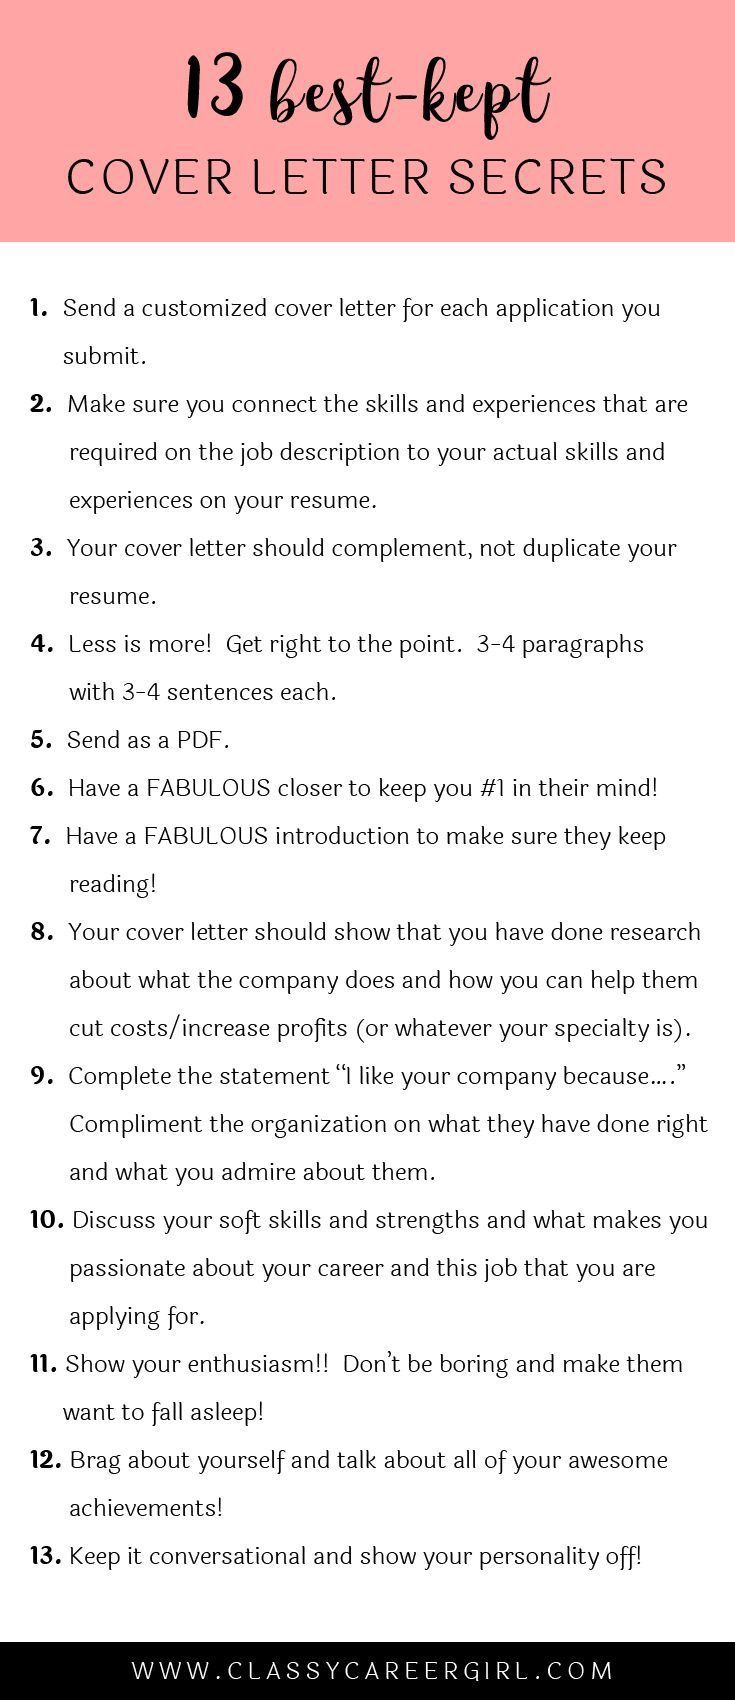 A Cover Letter For A Job Adorable Cover Letter Secrets  Professionalism  Pinterest  Adulting Job .